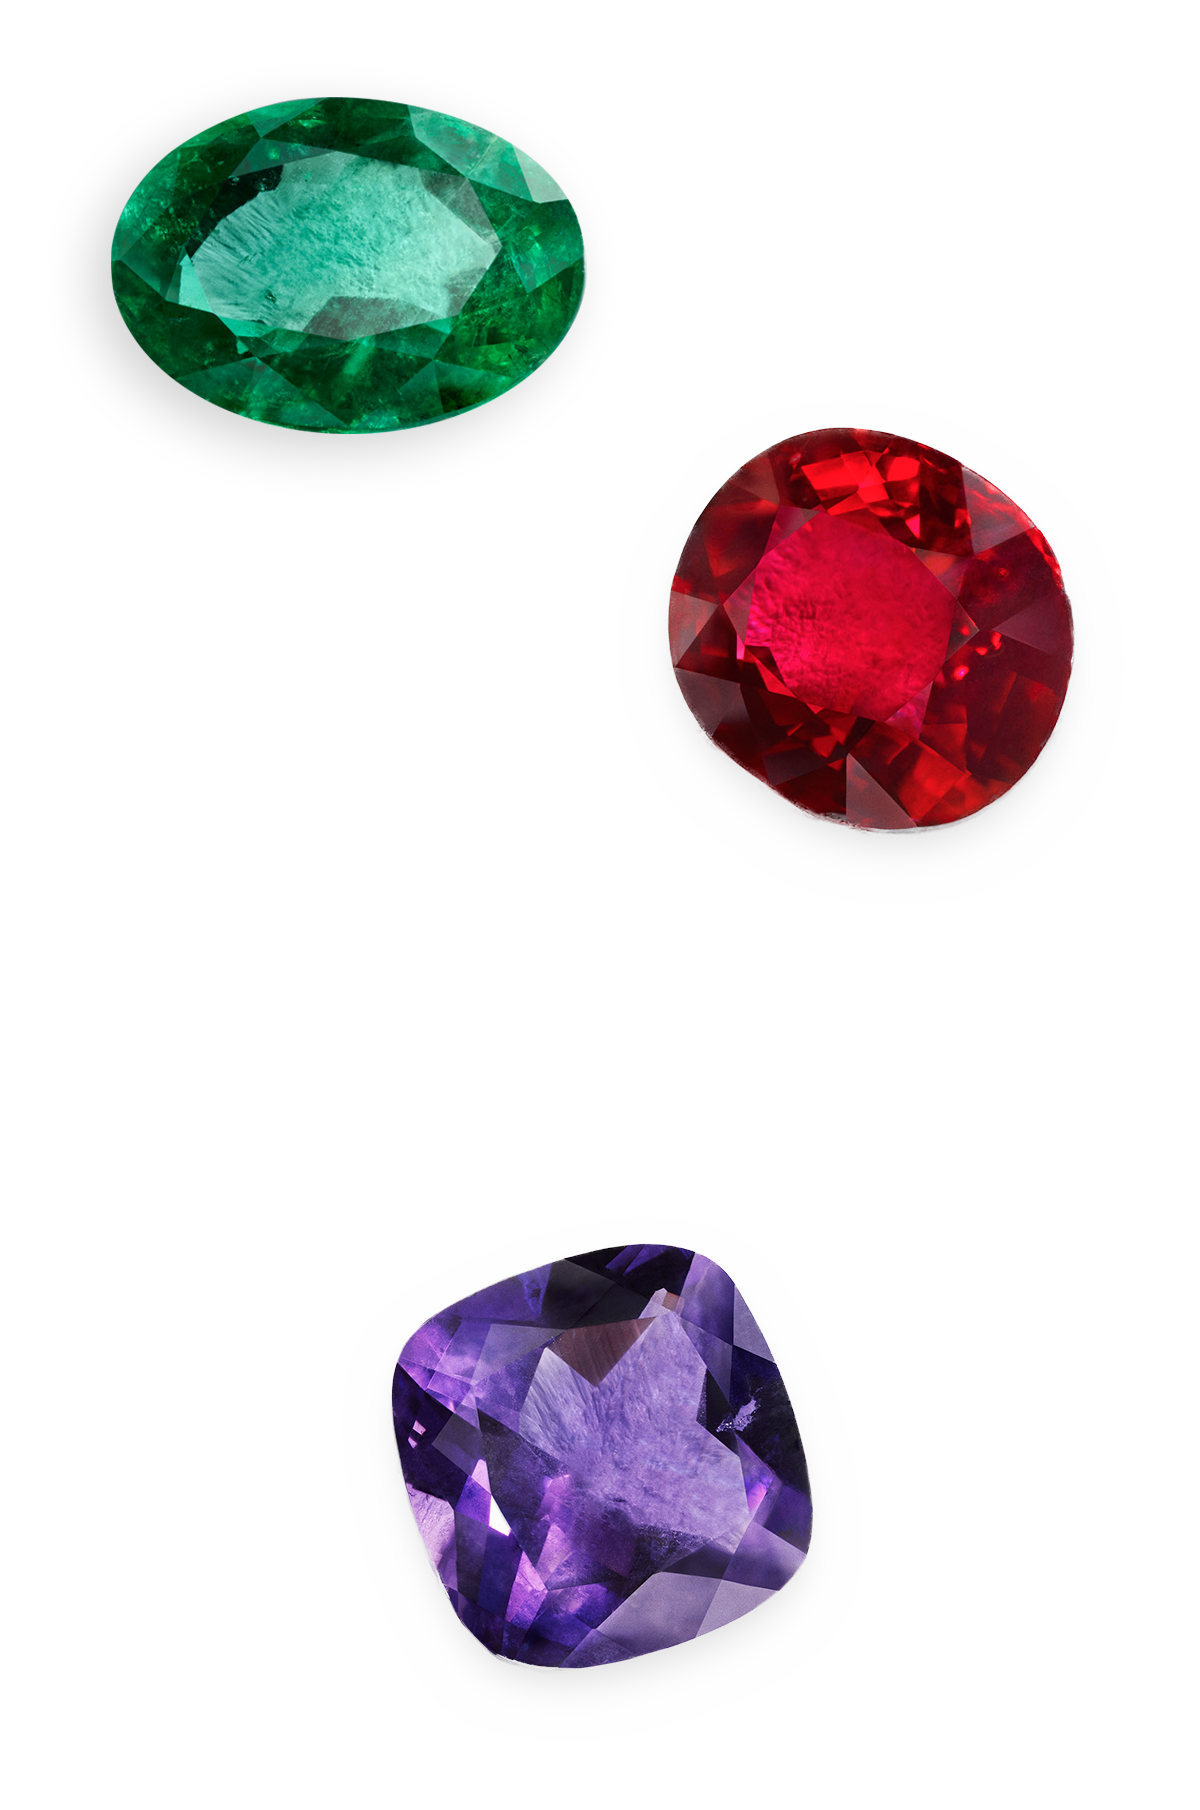 Gemstone buyers in download free clip art with a transparent.